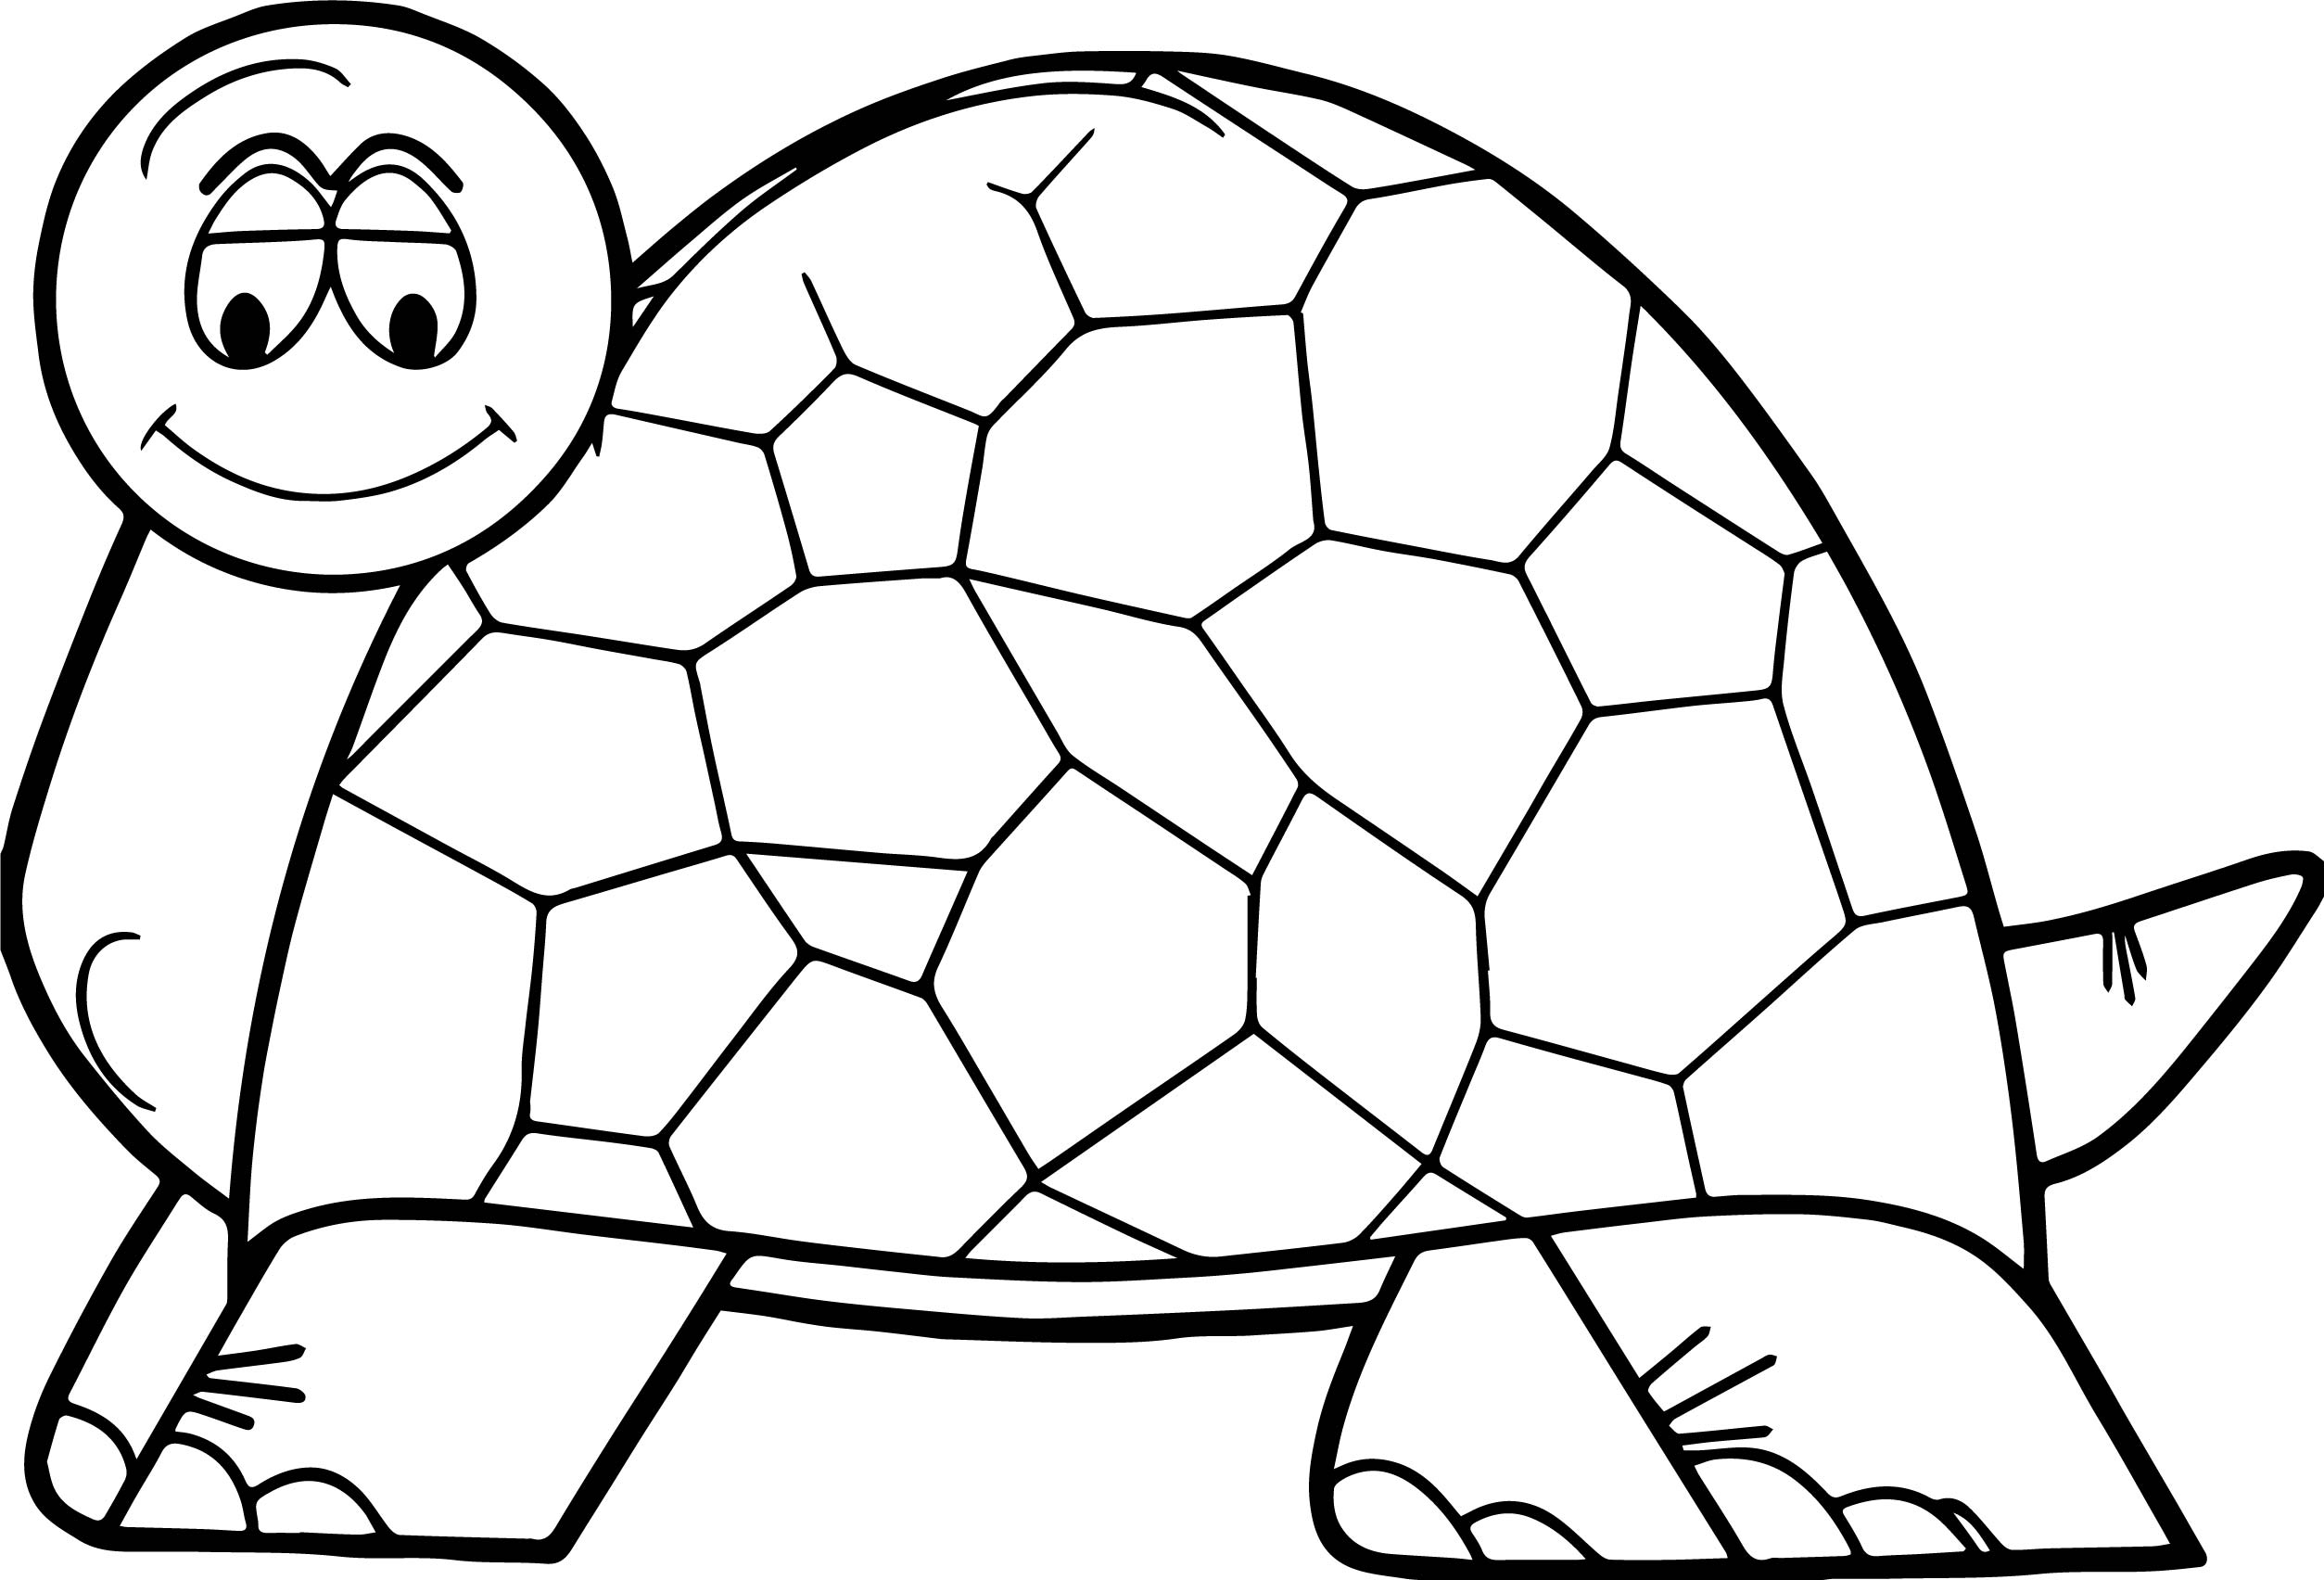 coloring book pages of turtles - cute thinking tortoise turtle coloring page